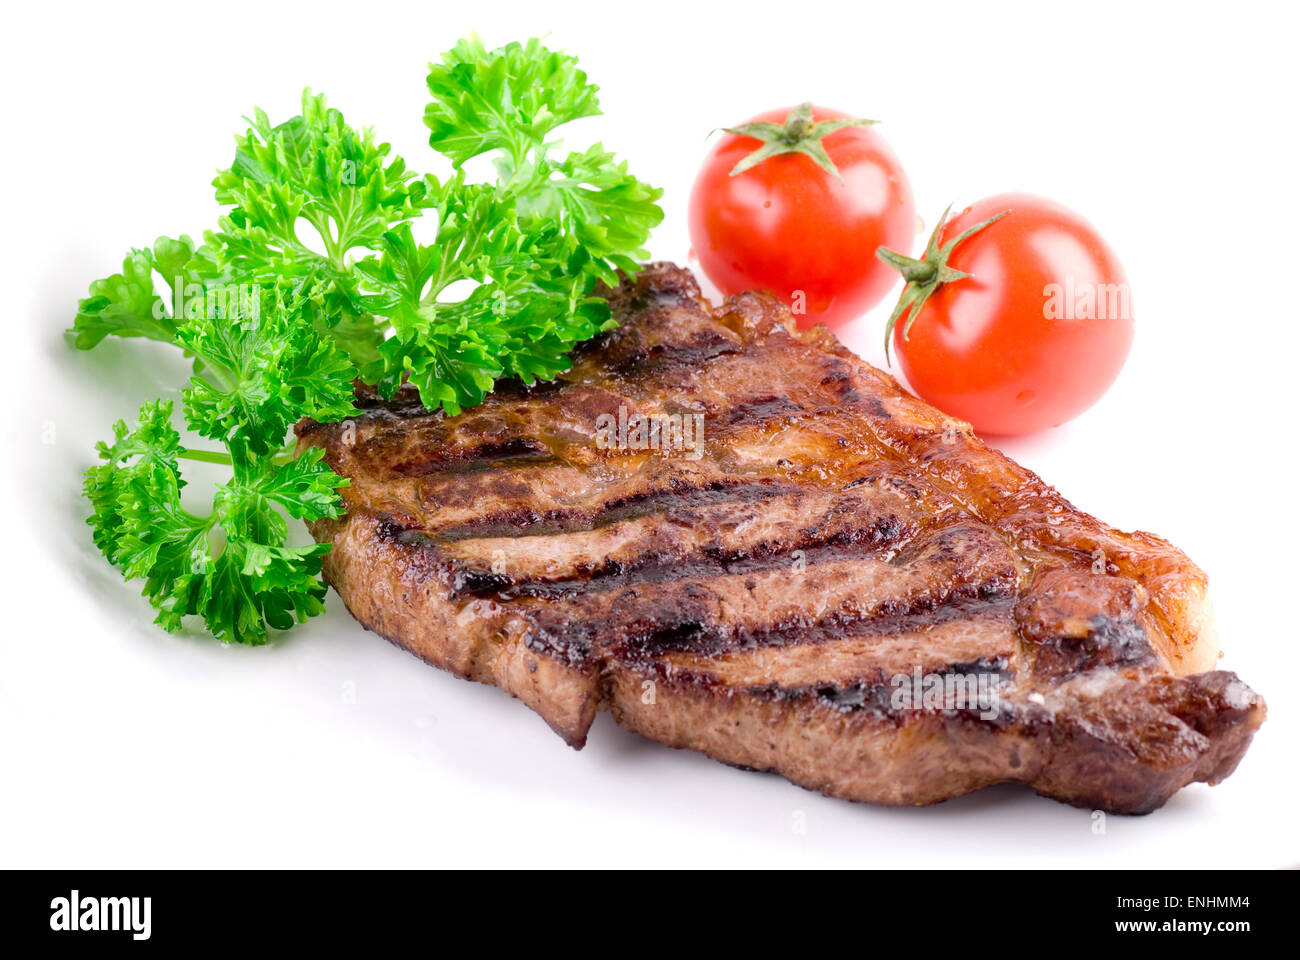 Grilled steak with fresh parsley on white plate. - Stock Image